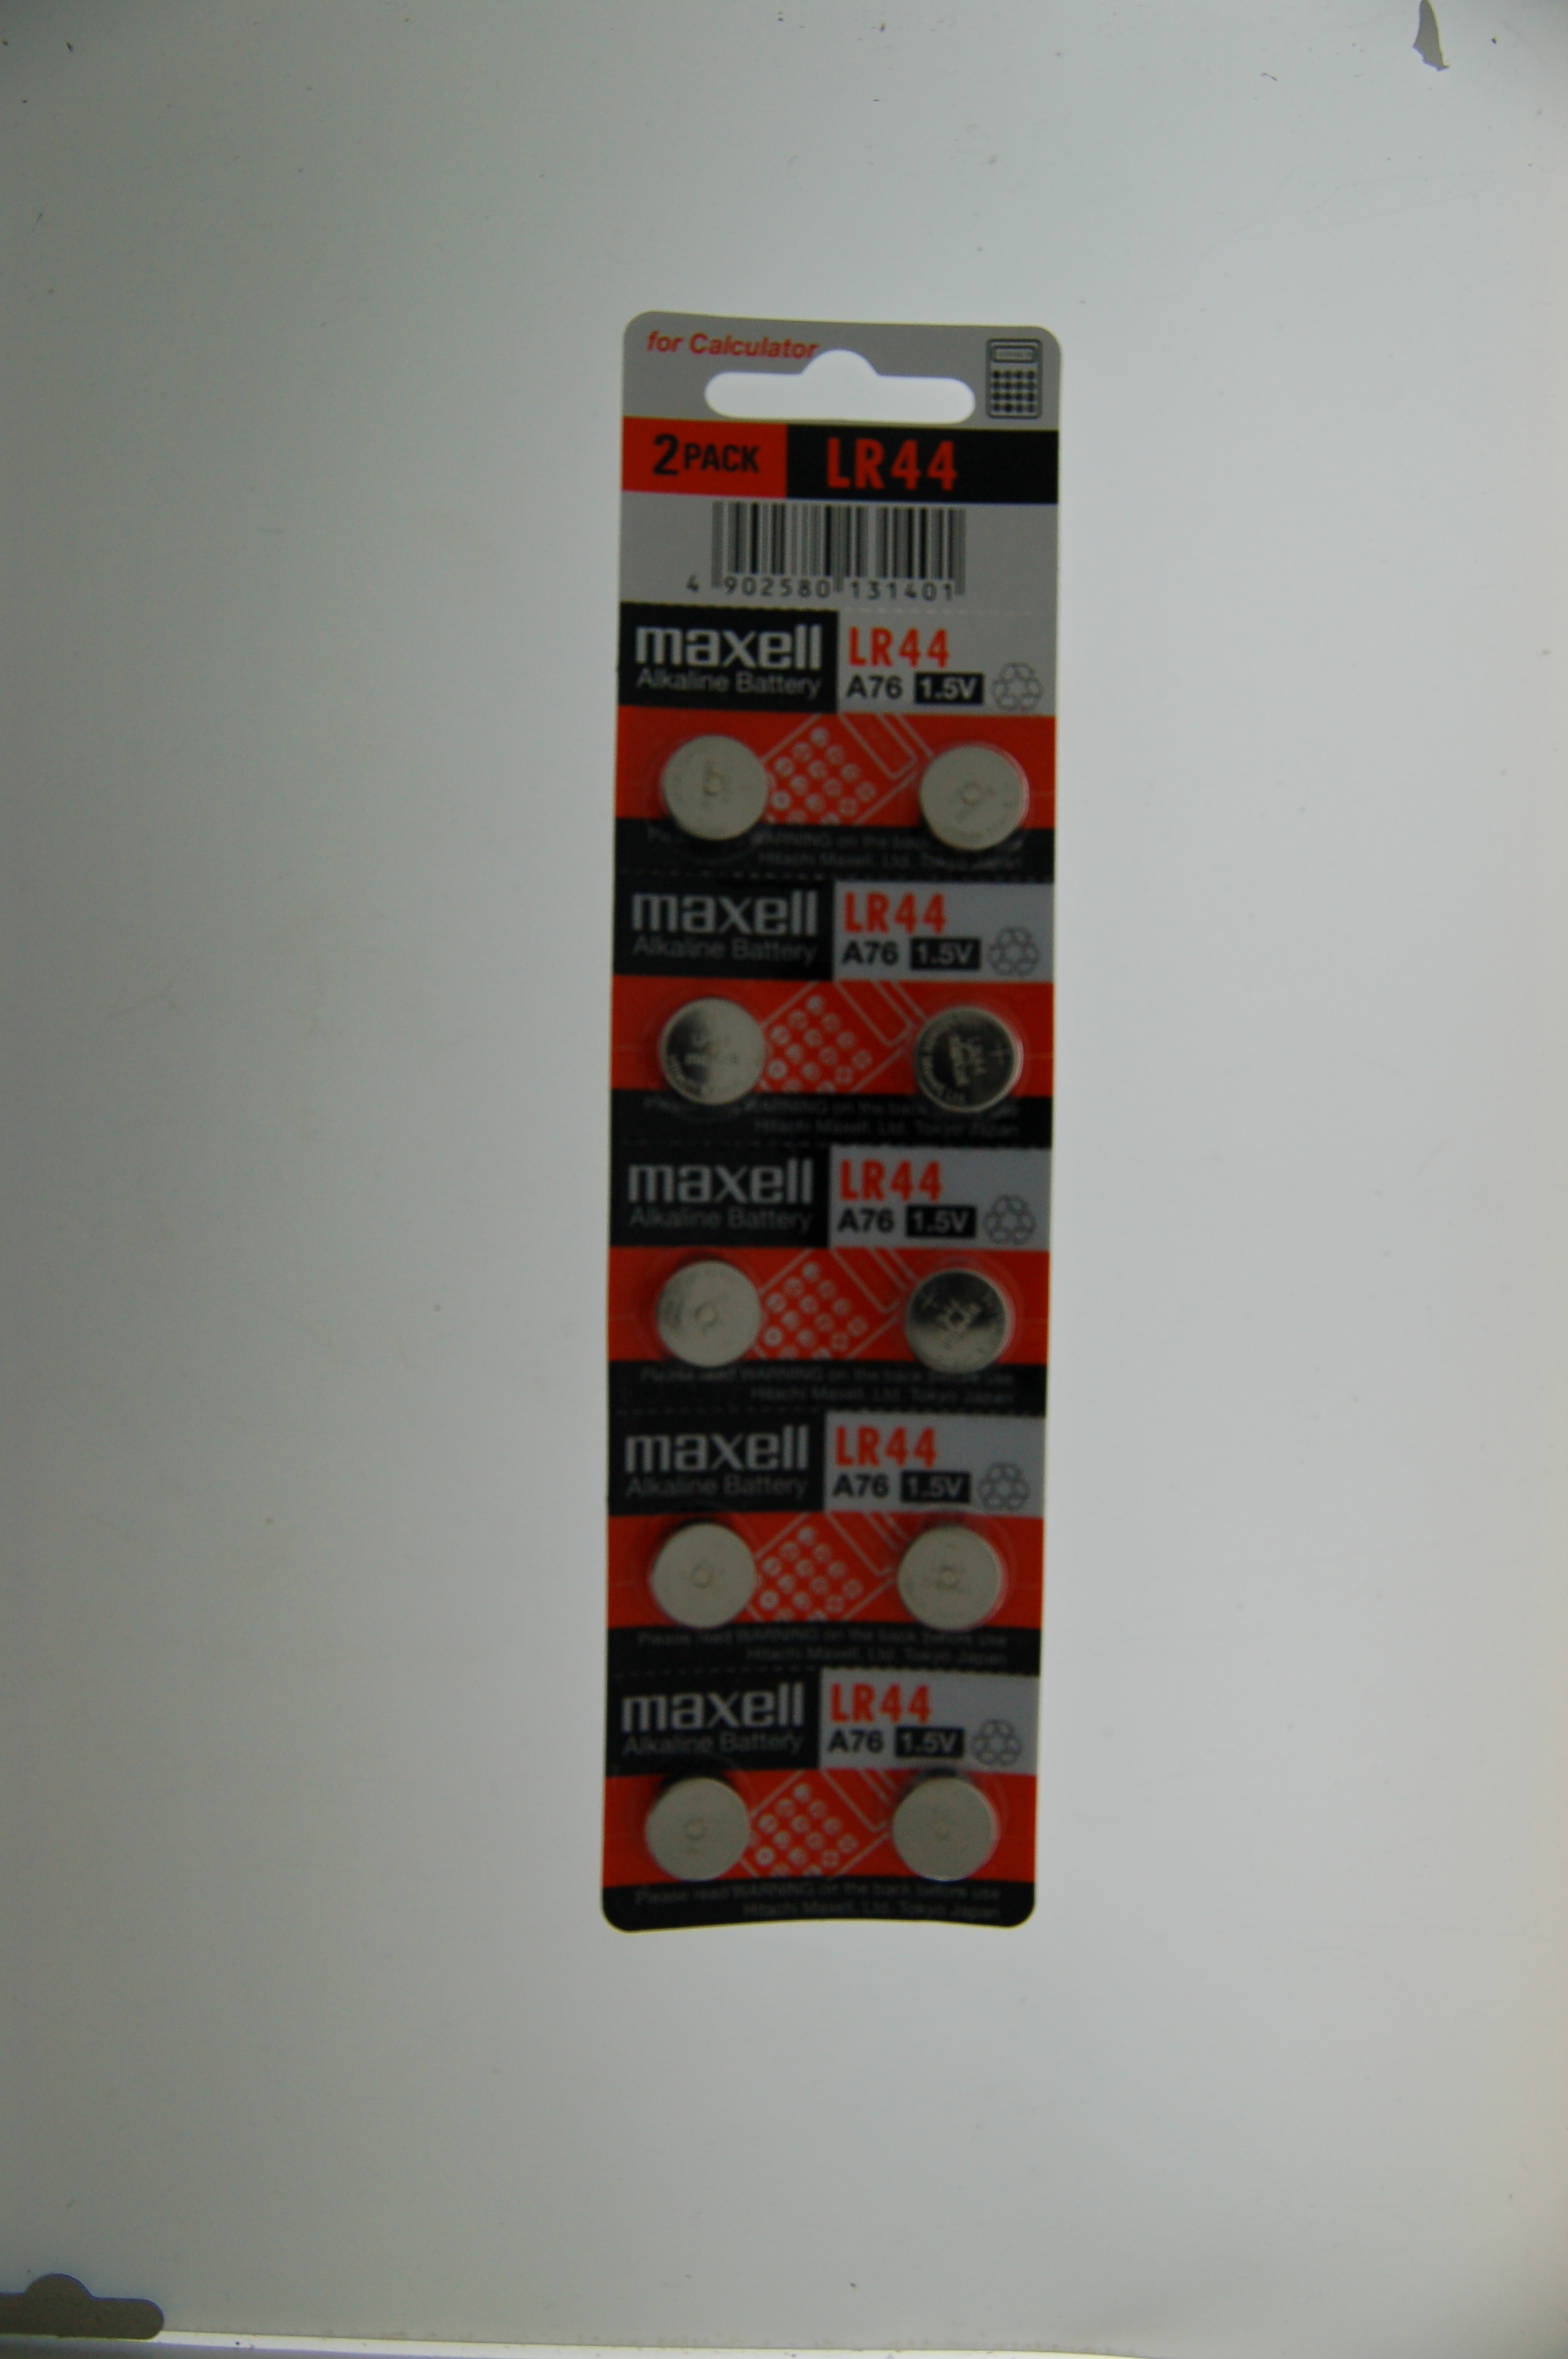 Maxell Alkaline Battery LR44